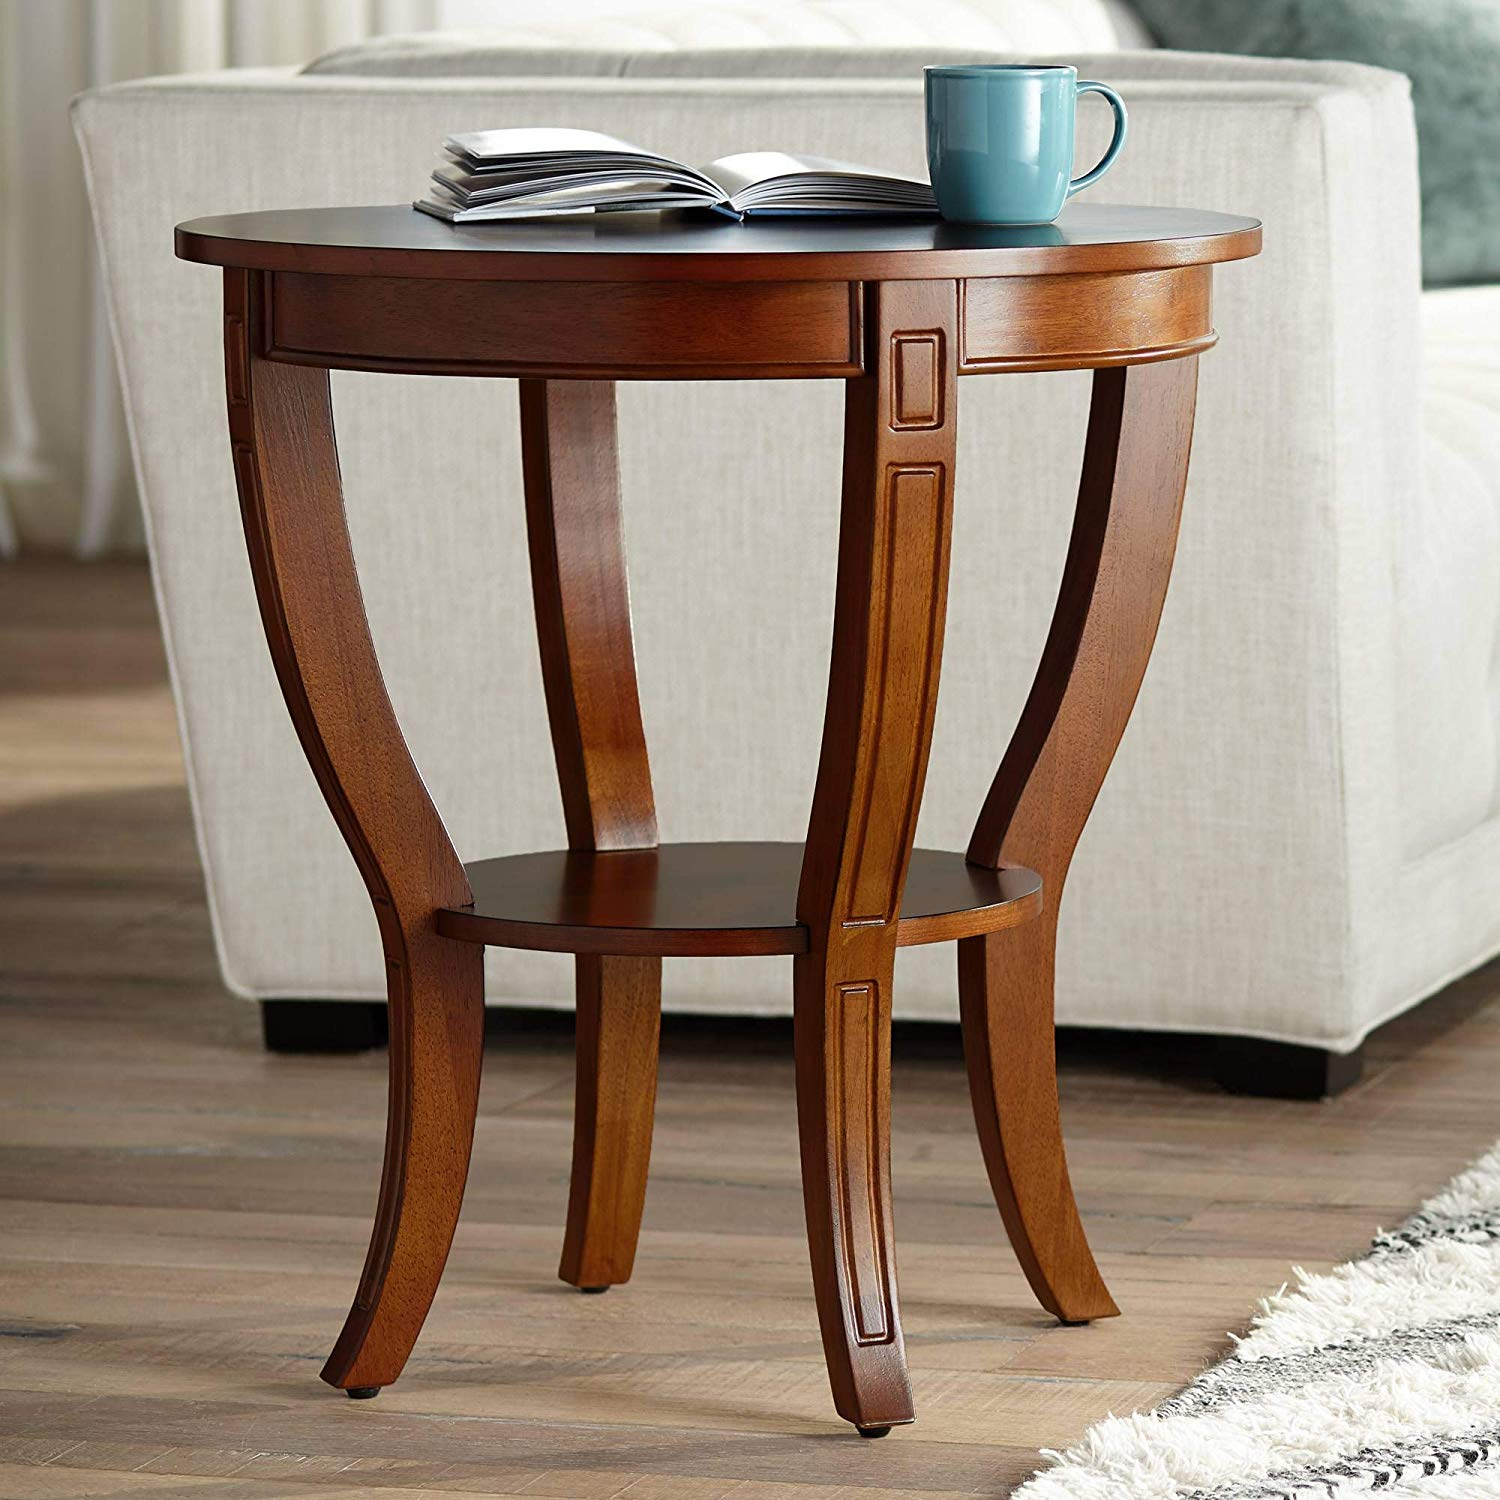 patterson americana wide cherry wood round end table finish kitchen dining mission style night tables mirrored bedroom set dog crate cart plexi coffee speakers leon edmonton